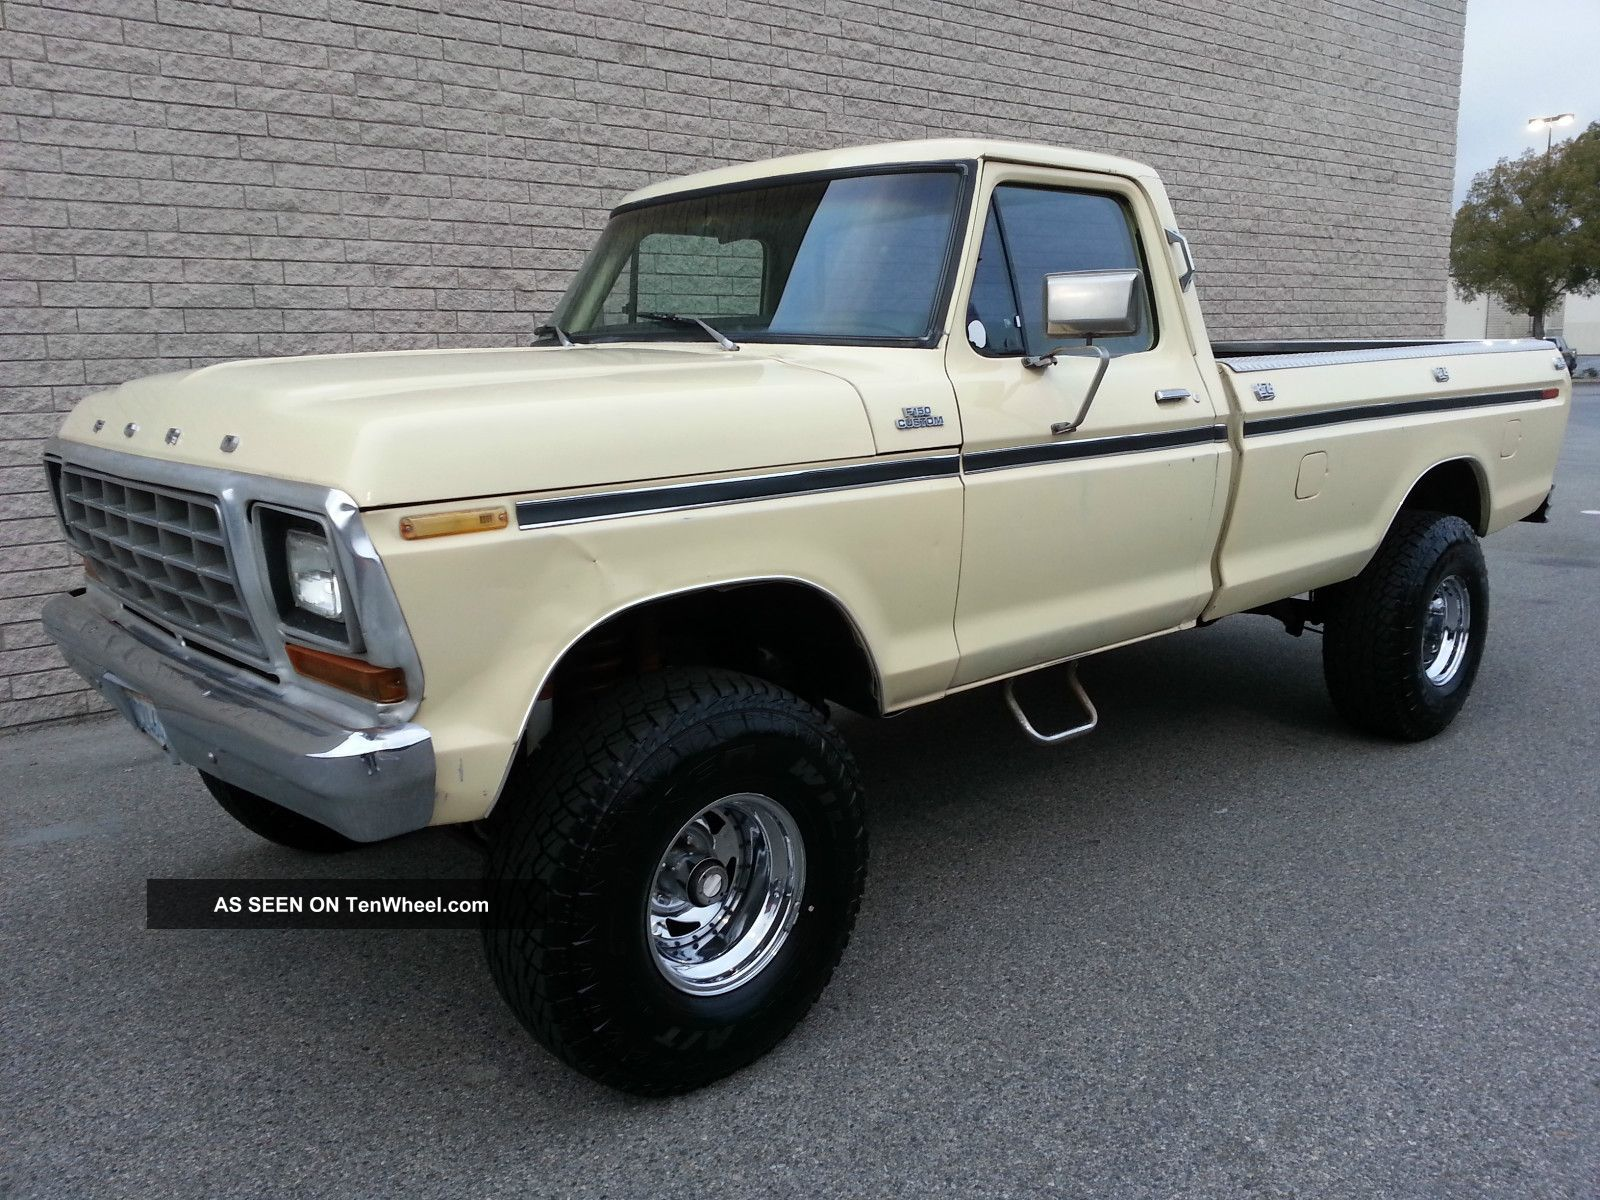 1979 Ford F150 4x4 Custom 351 V8 Rust 4 Inch Lift Automatic 4wd 79 F